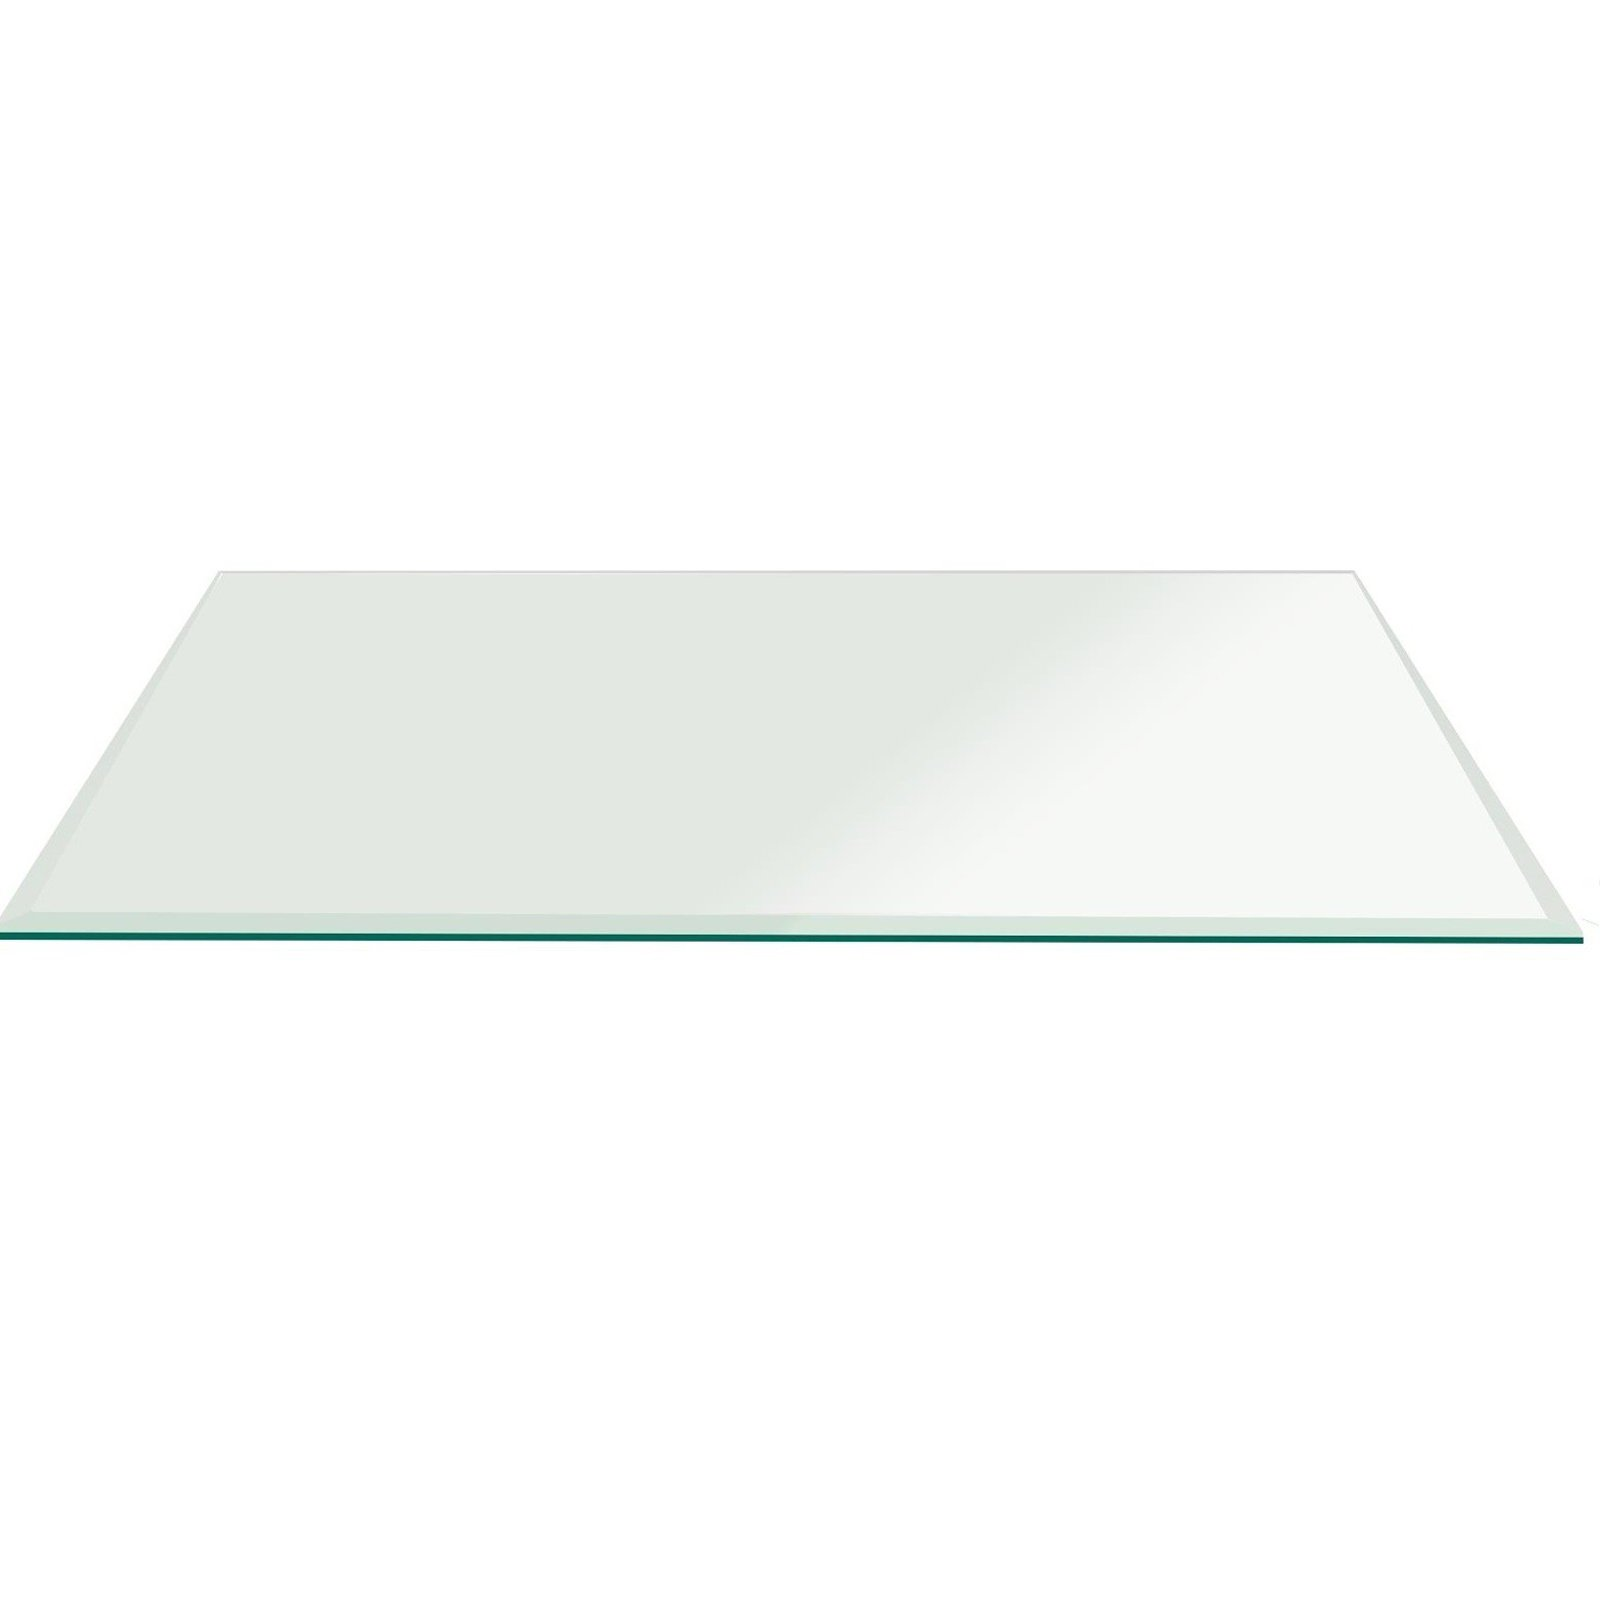 Fab Glass 36x72RECT10THBETE-T Rectangle Glass, 3/8'' Thick Bevel Tempered Radius Corners, 36'' L x 72'' W